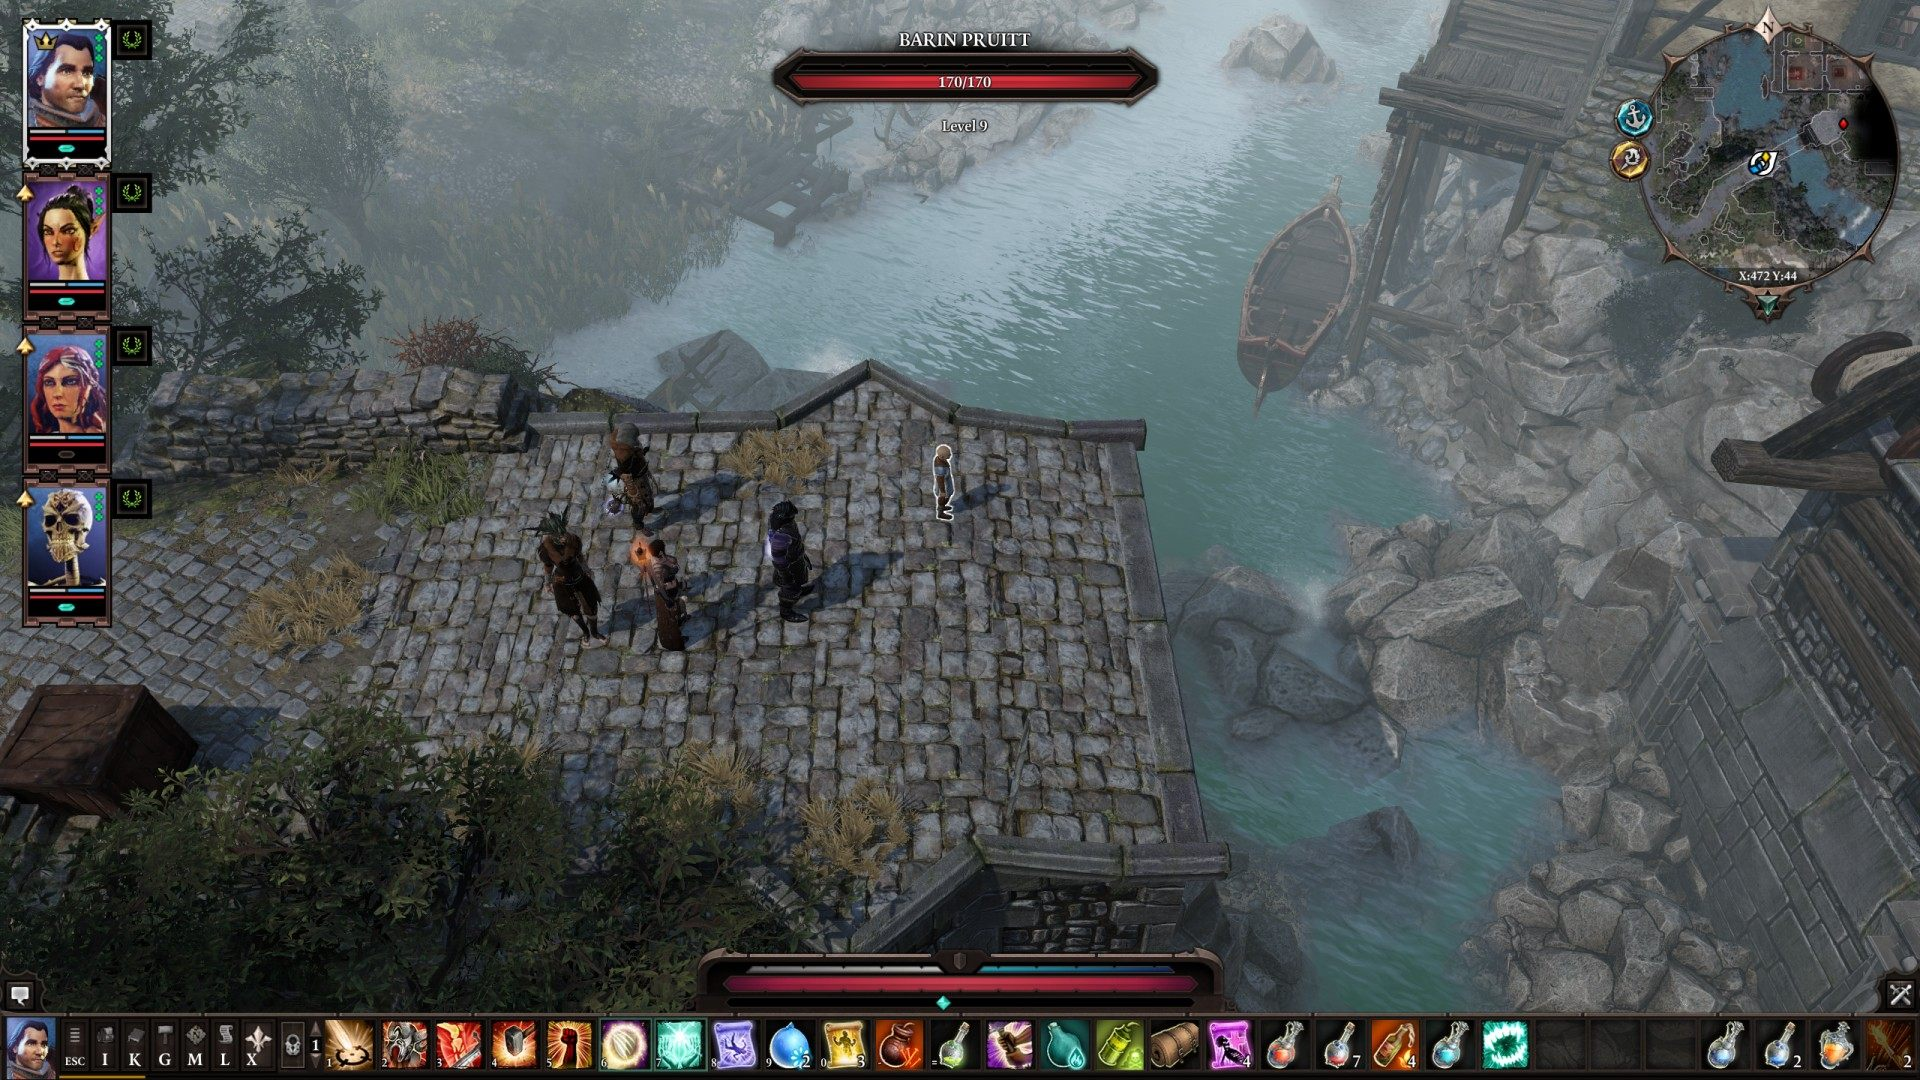 They Shall Not Pass, Divinity: Original Sin 2 Quest